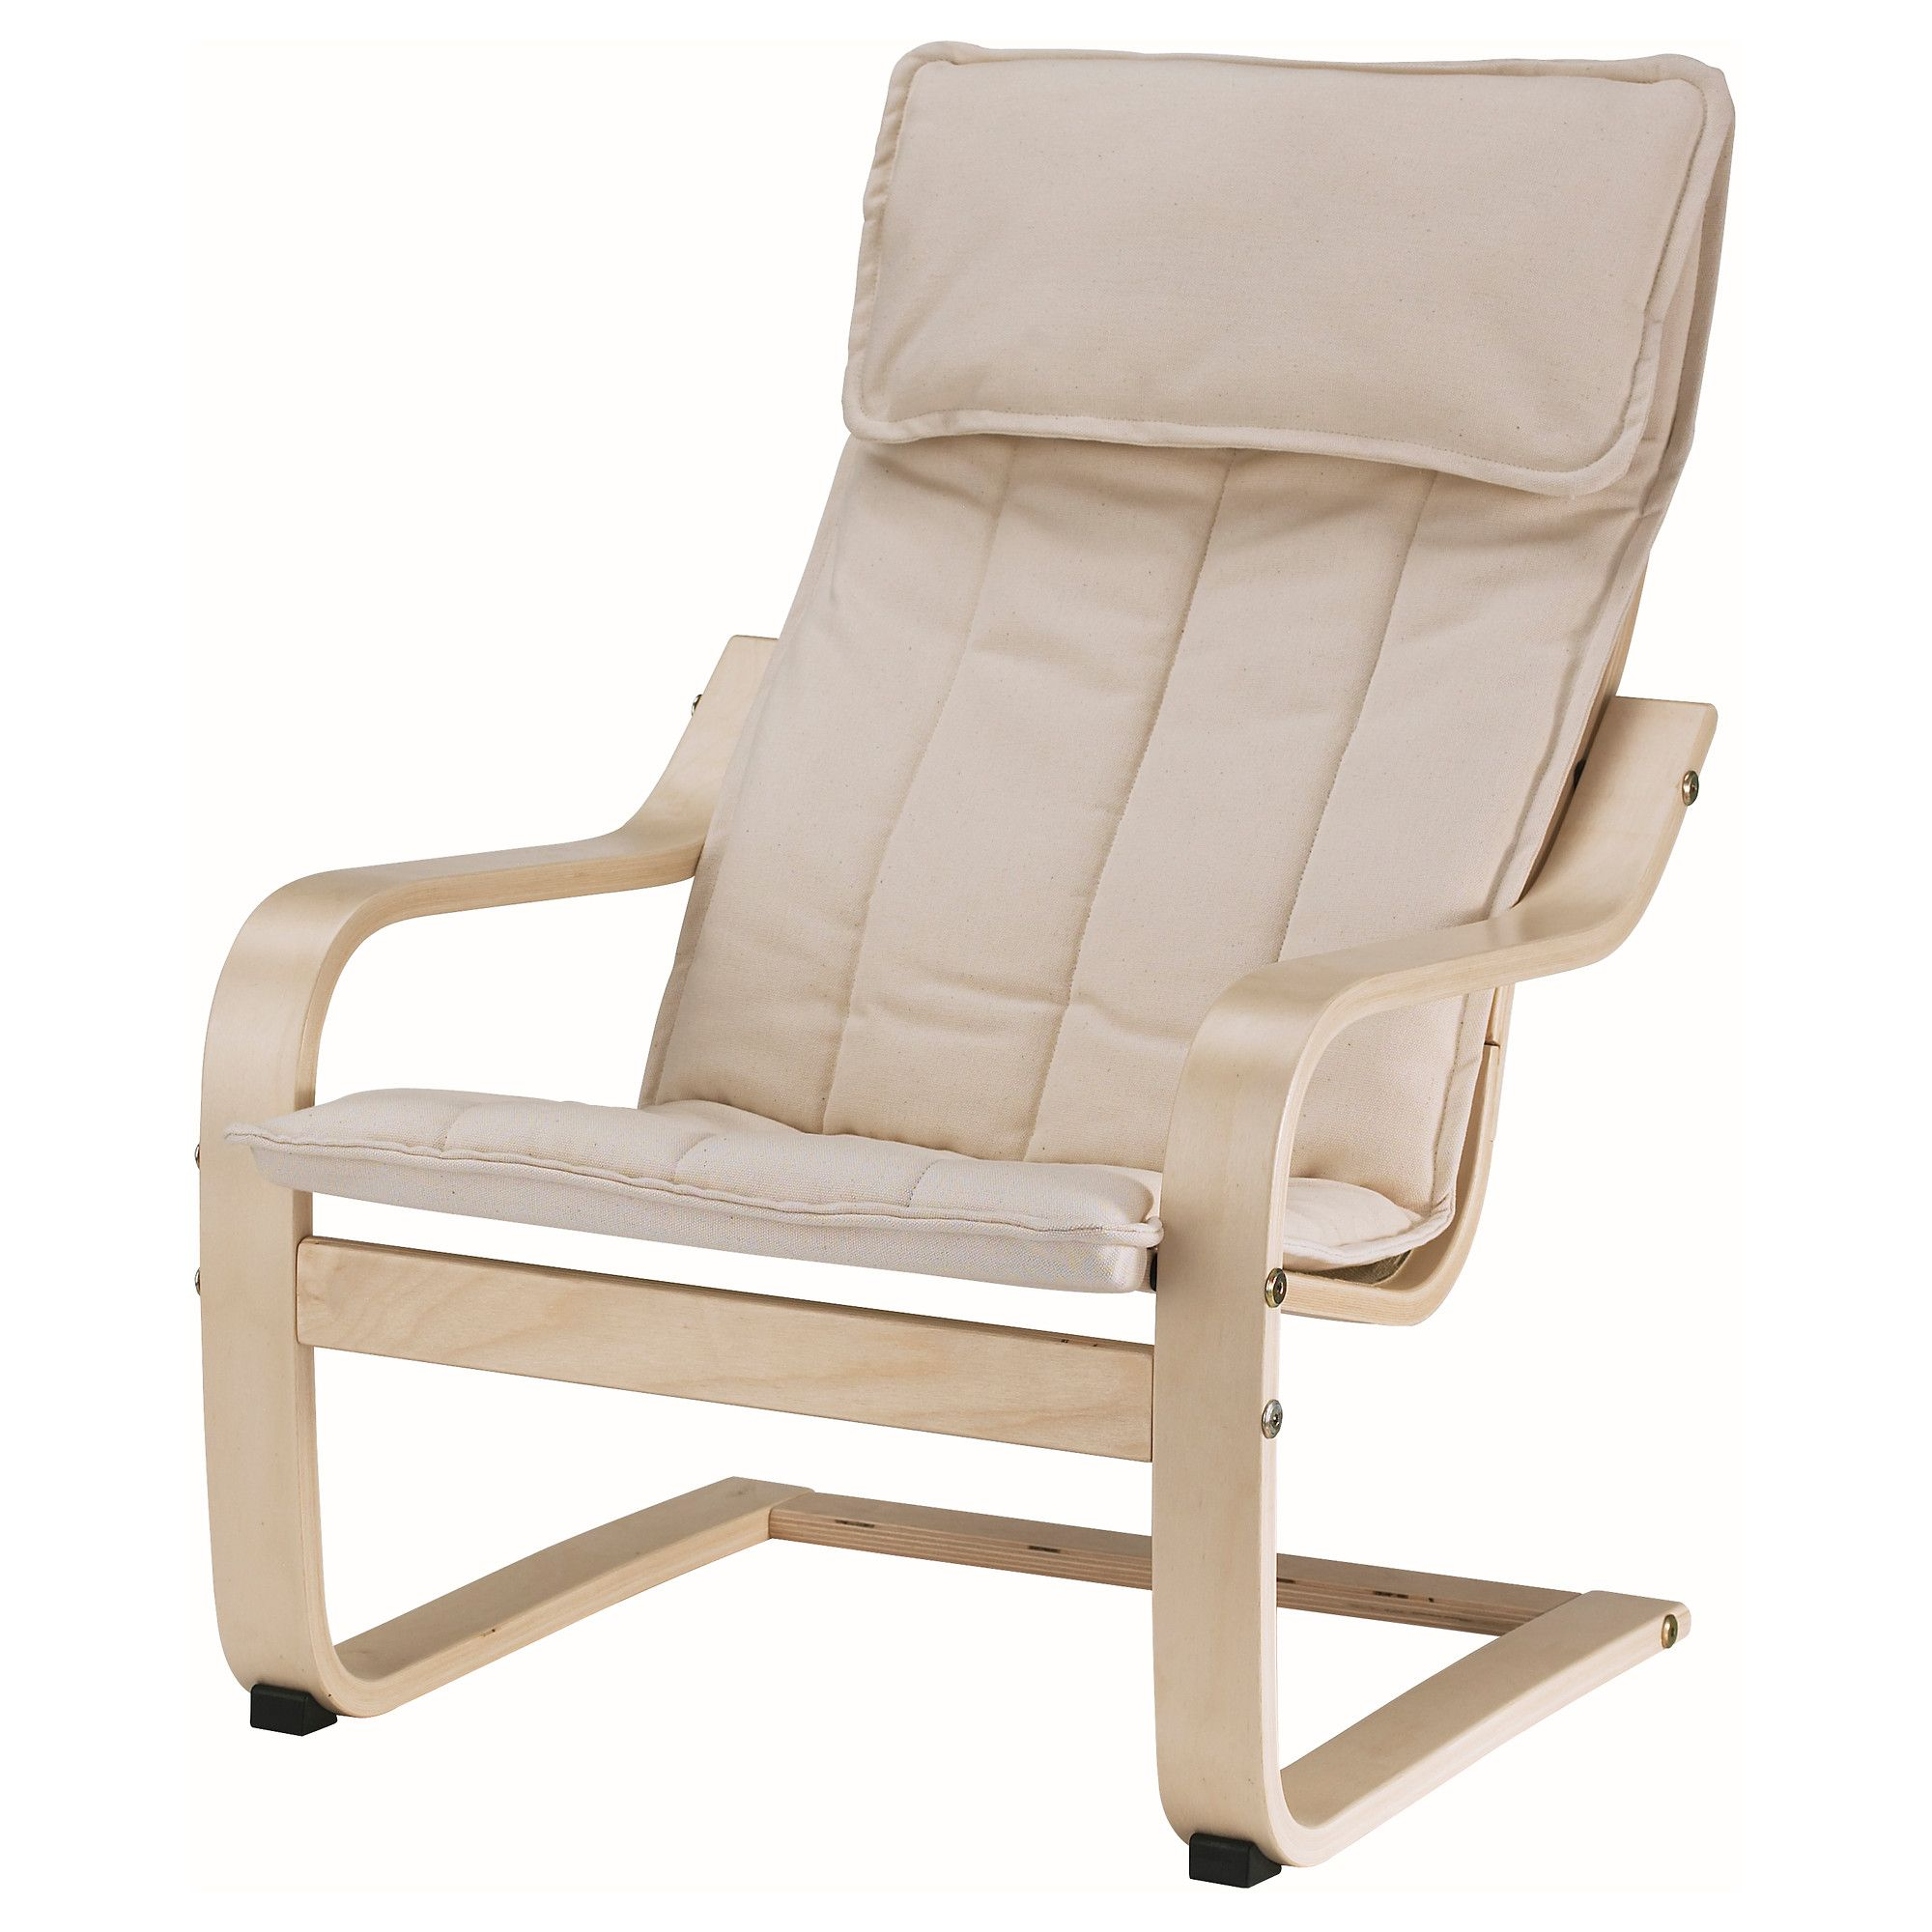 An Ikea Bentwood frame easy chair.